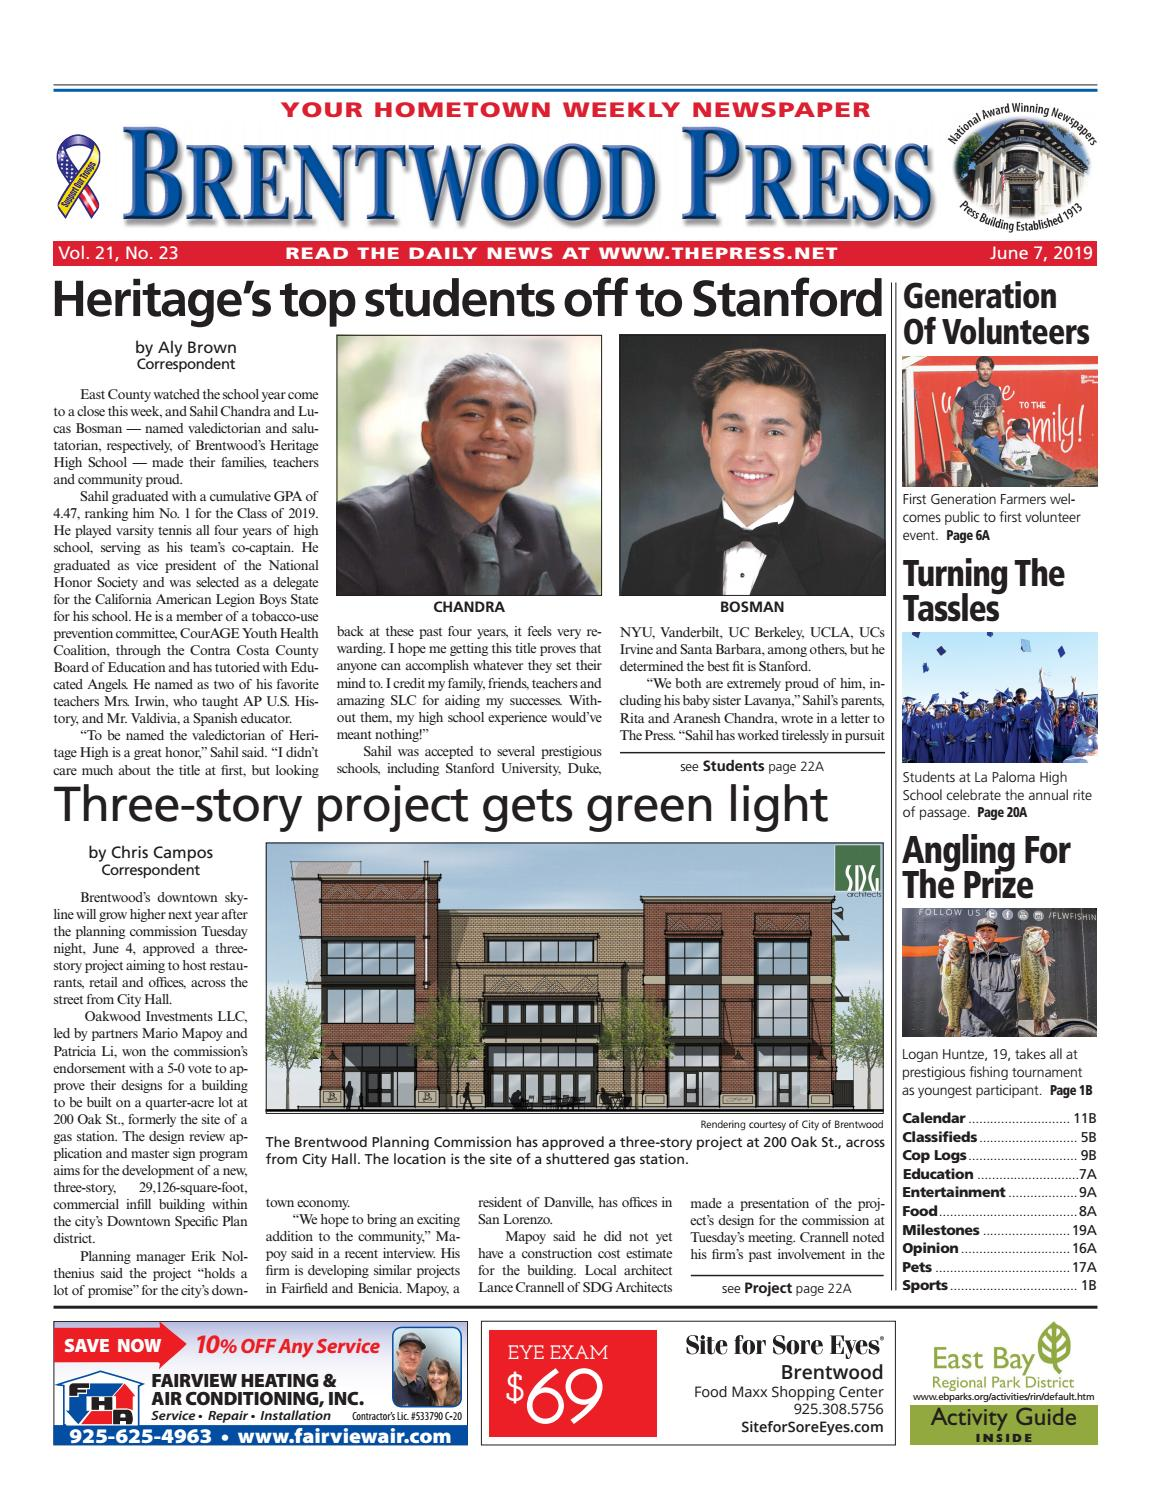 Amara Villafuerte brentwood press 06.07.19brentwood press & publishing - issuu